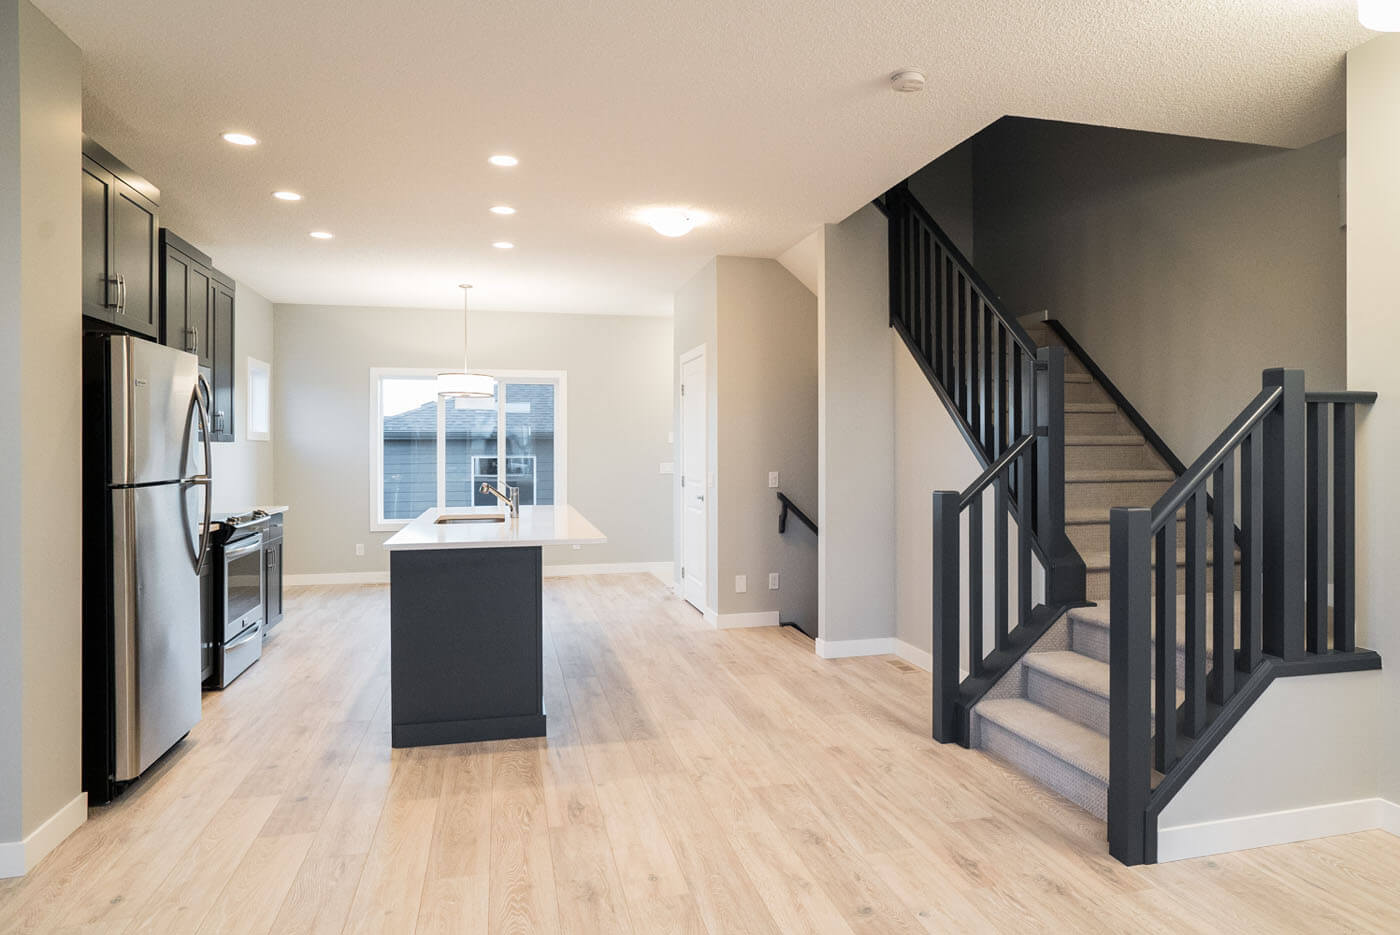 New Calgary Paired Home Quick Possession Cobalt 1 in Walden, located at 1346 Walden Drive SE Built By Cardel Homes Calgary